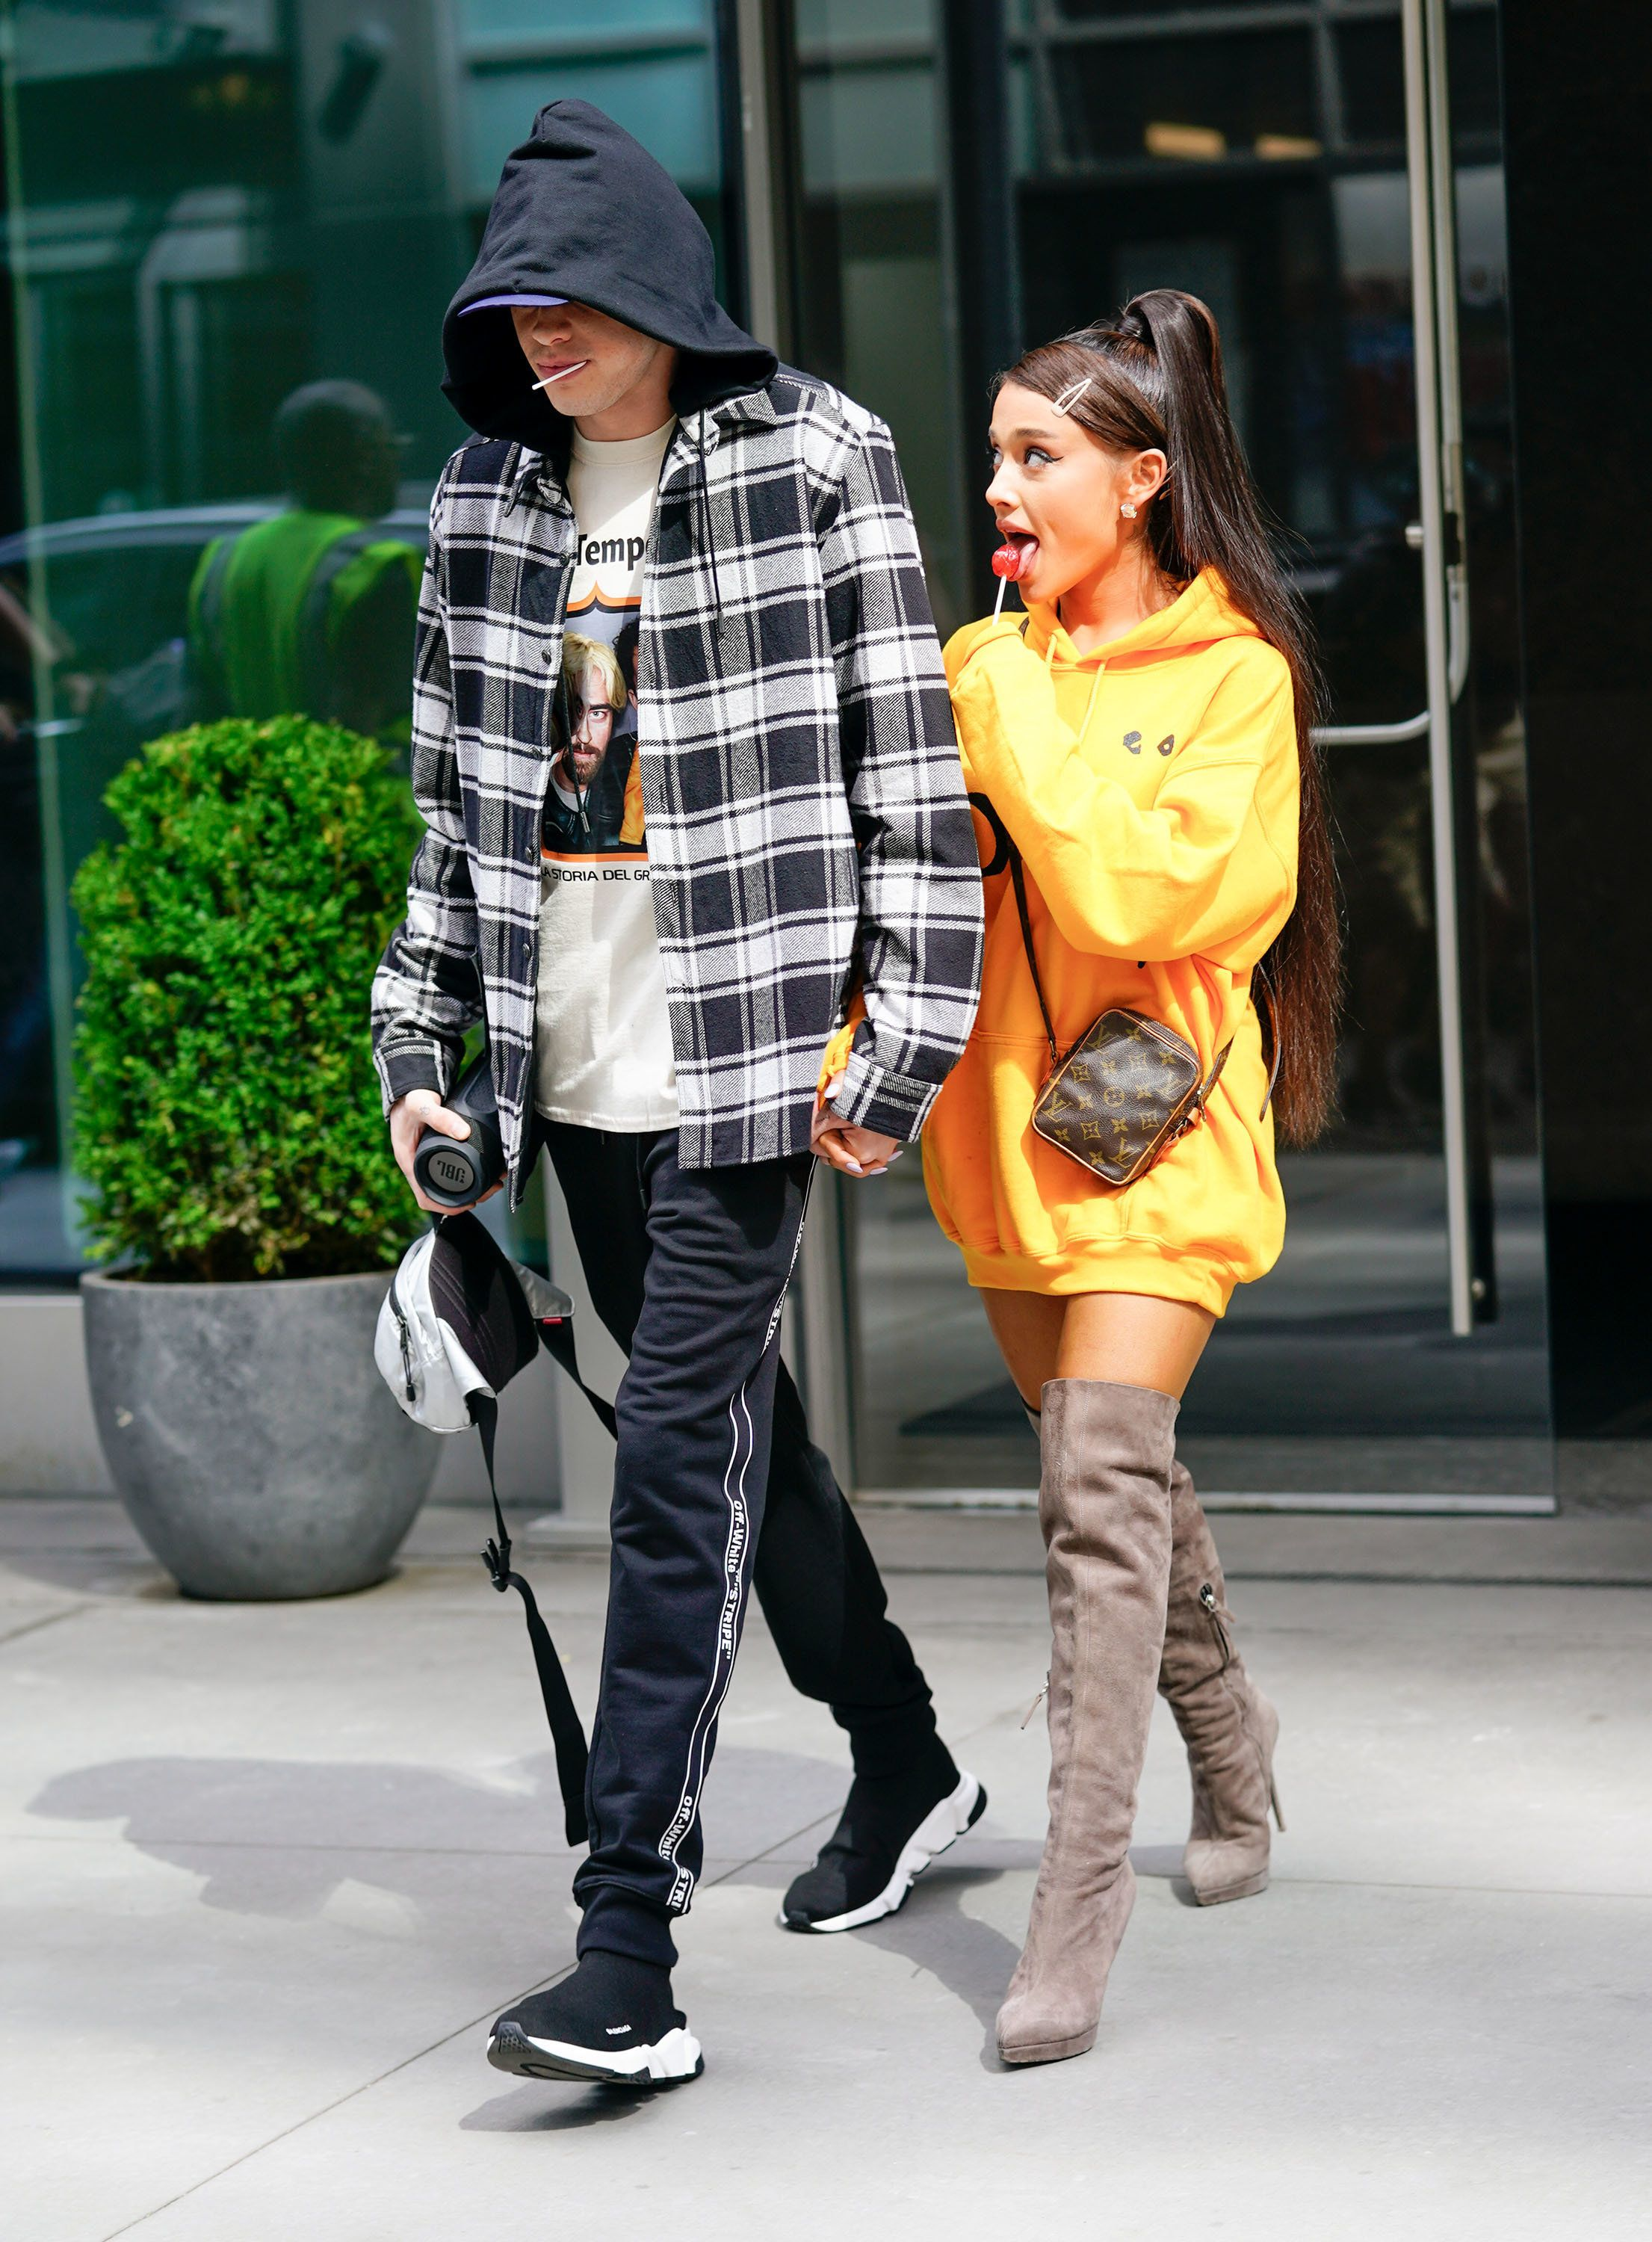 NEW YORK, NY - JUNE 20:  Pete Davidson and Ariana Grande are seen on June 20, 2018 in New York City.  (Photo by Gotham/GC Images)